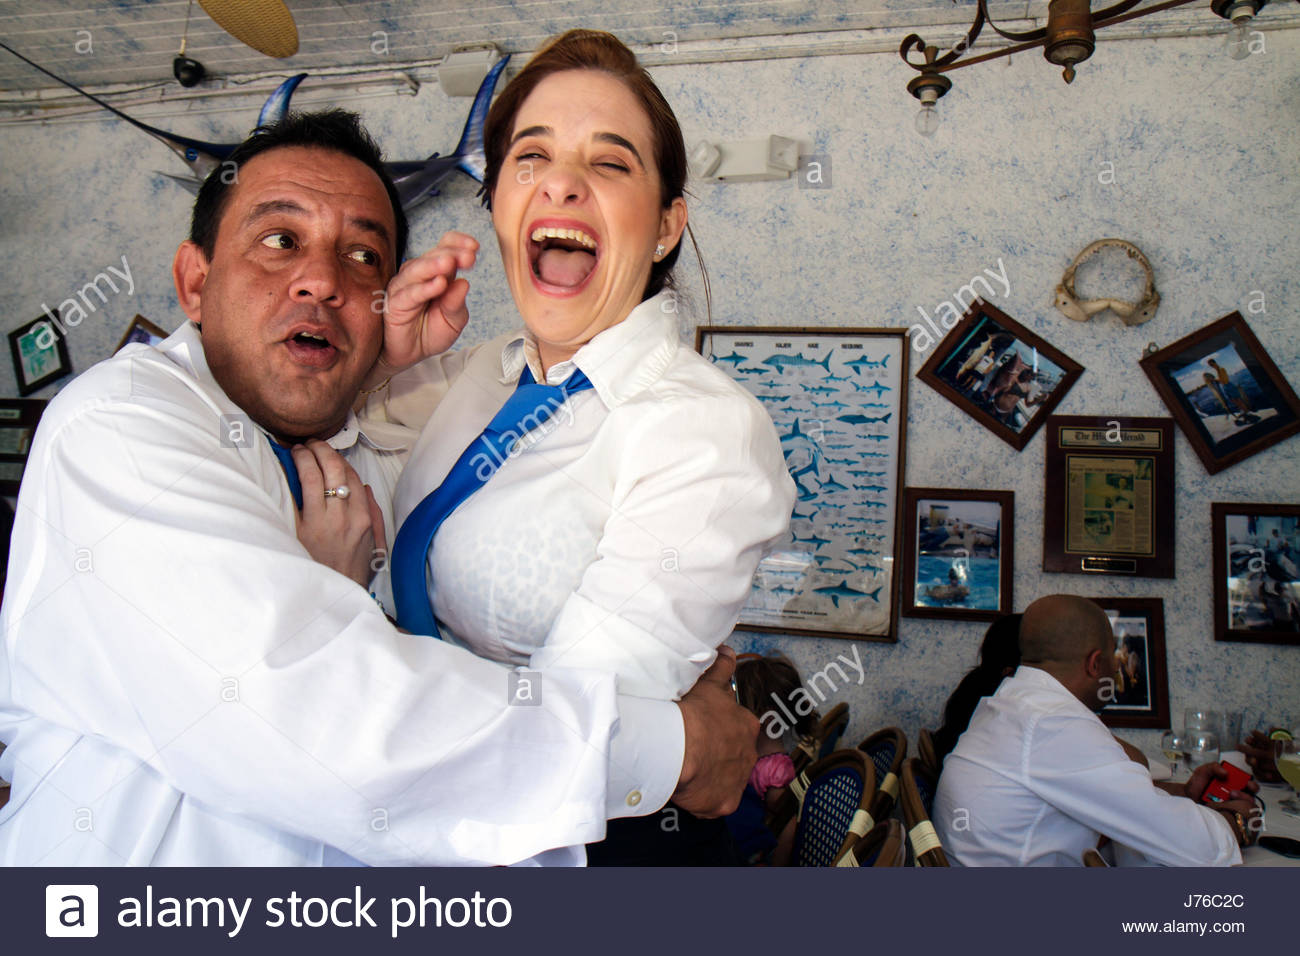 Miami Florida Casablanca Seafood Bar and & Grill restaurant Hispanic man woman waiter waitress co-workers horseplay - Stock Image